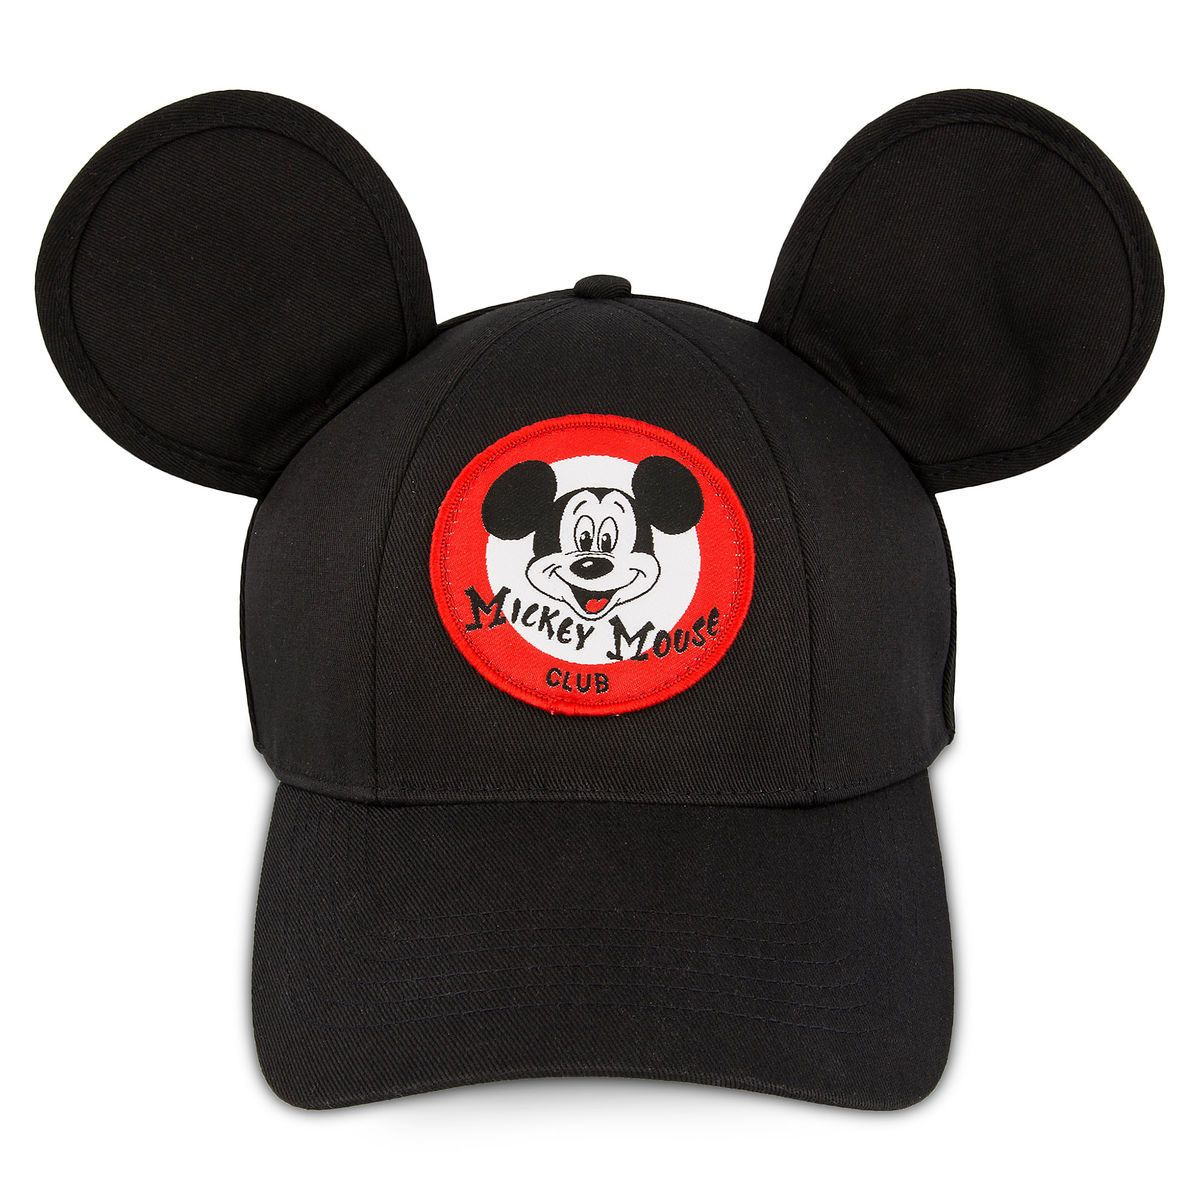 43da5c39ff8 Product Image of Mouseketeer Ear Baseball Cap for Adults - The Mickey Mouse  Club   1